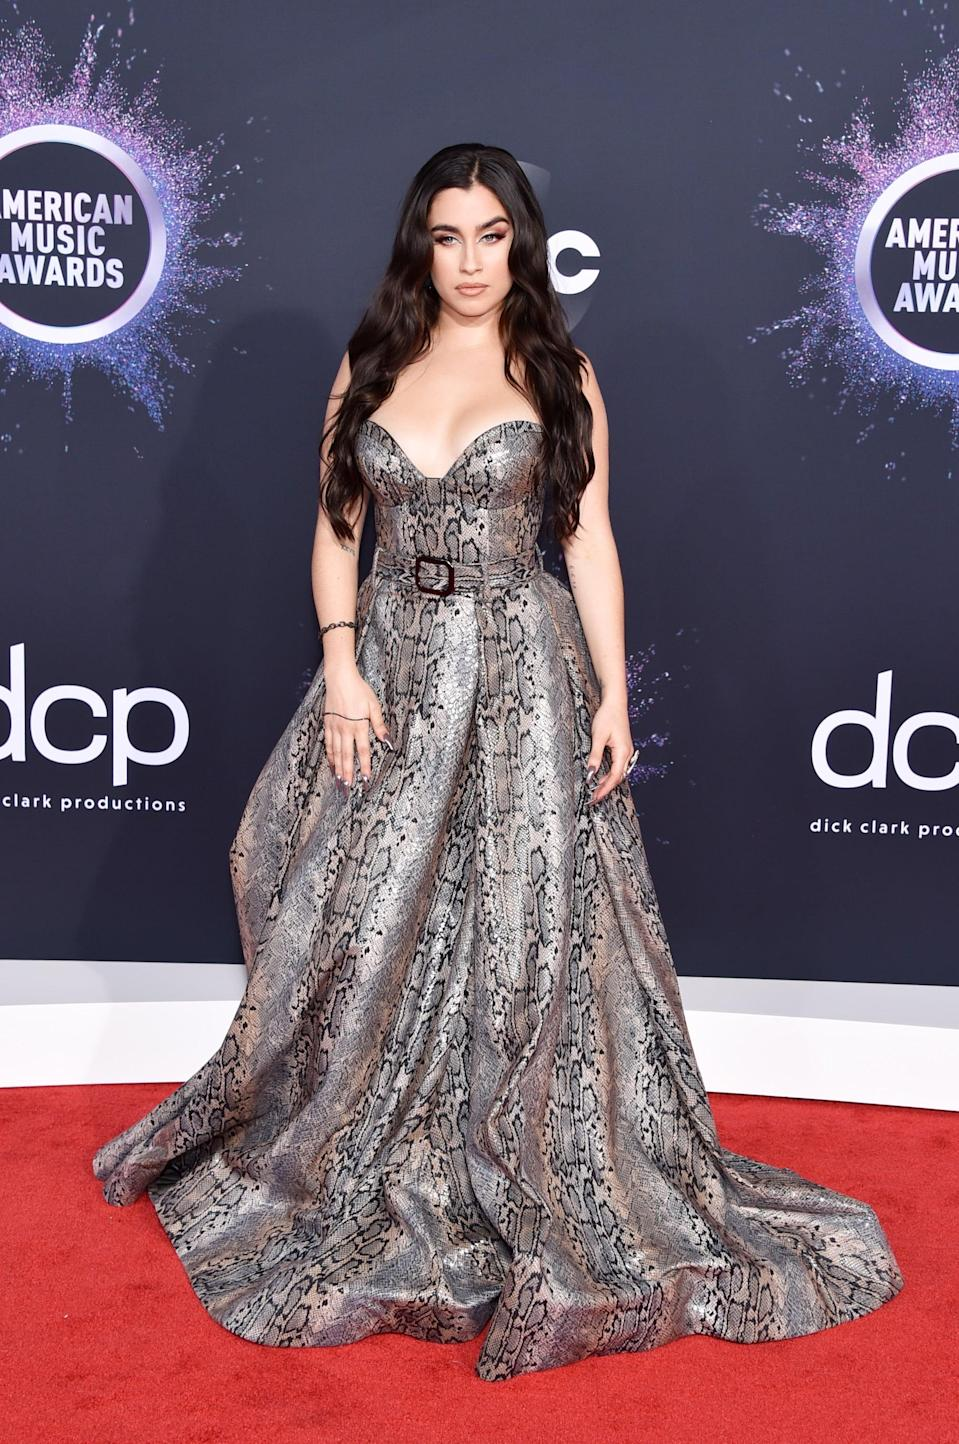 <p>The singer's dress had a belt detail that complemented her waist.</p>